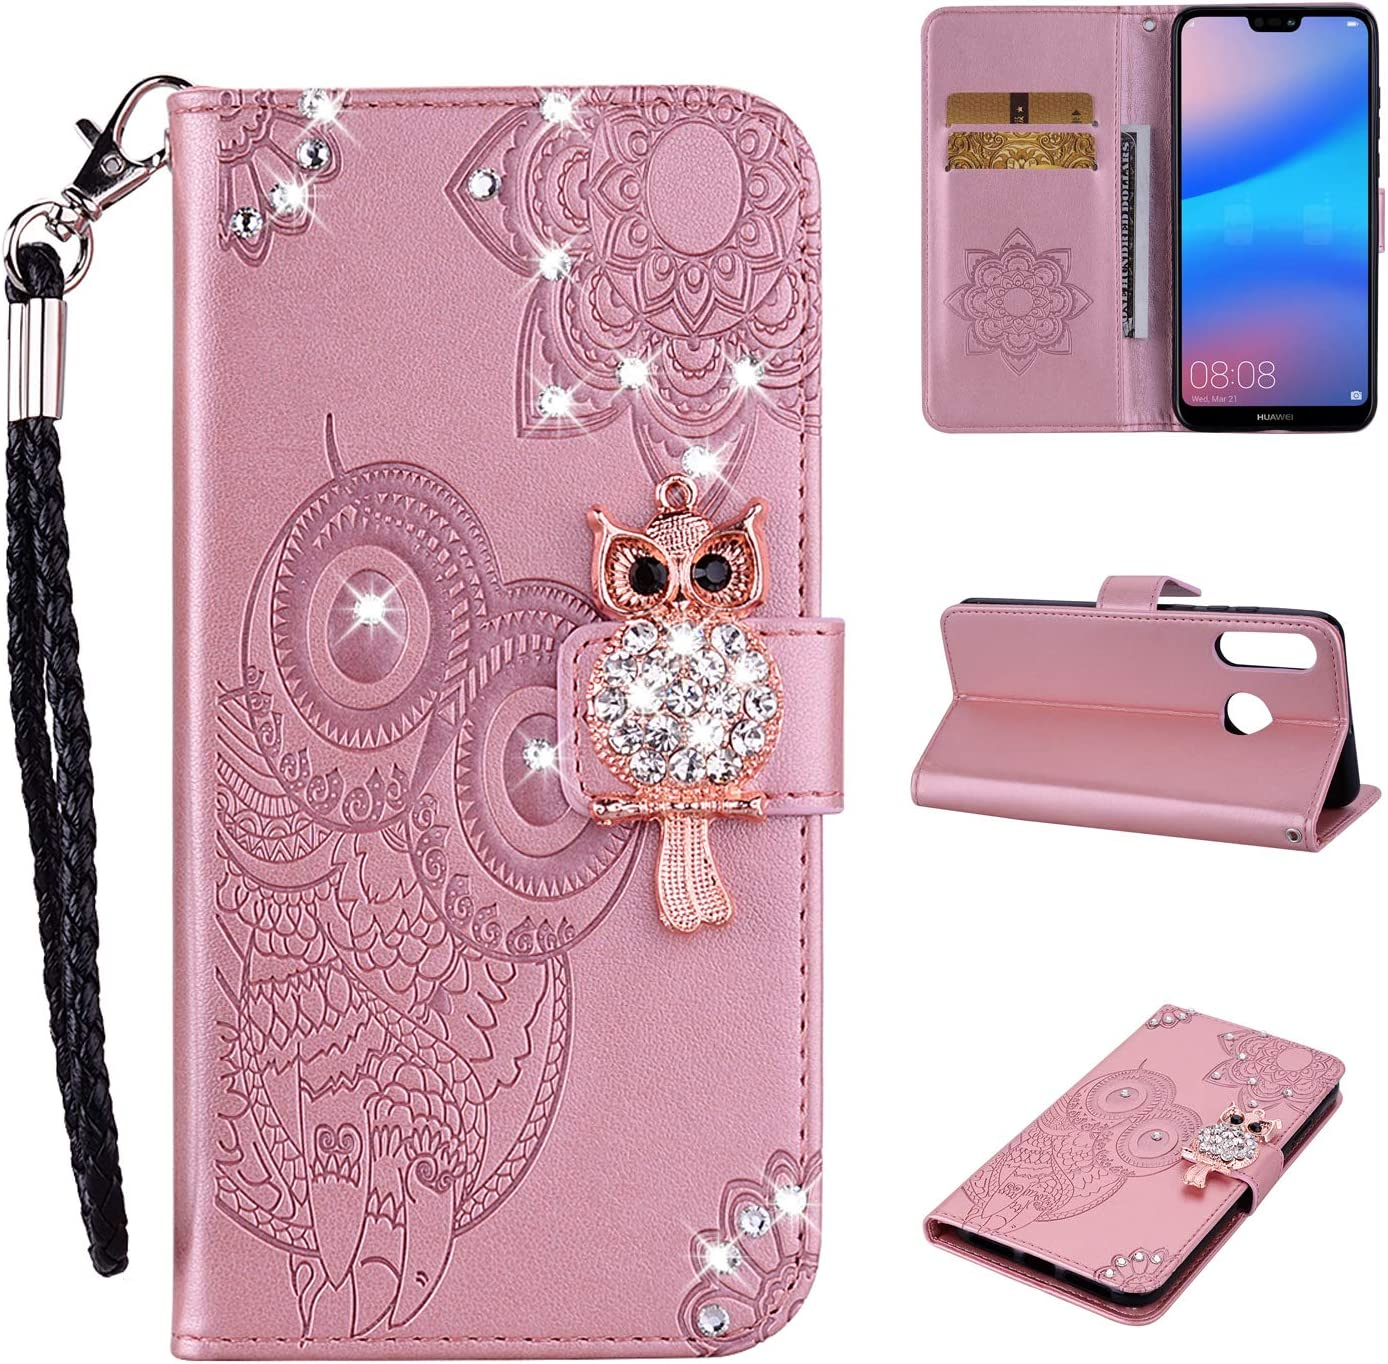 Strap Diamond Wallet Superior Case for Huawei Lite Aoucase P30 Max 55% OFF Luxury 3D